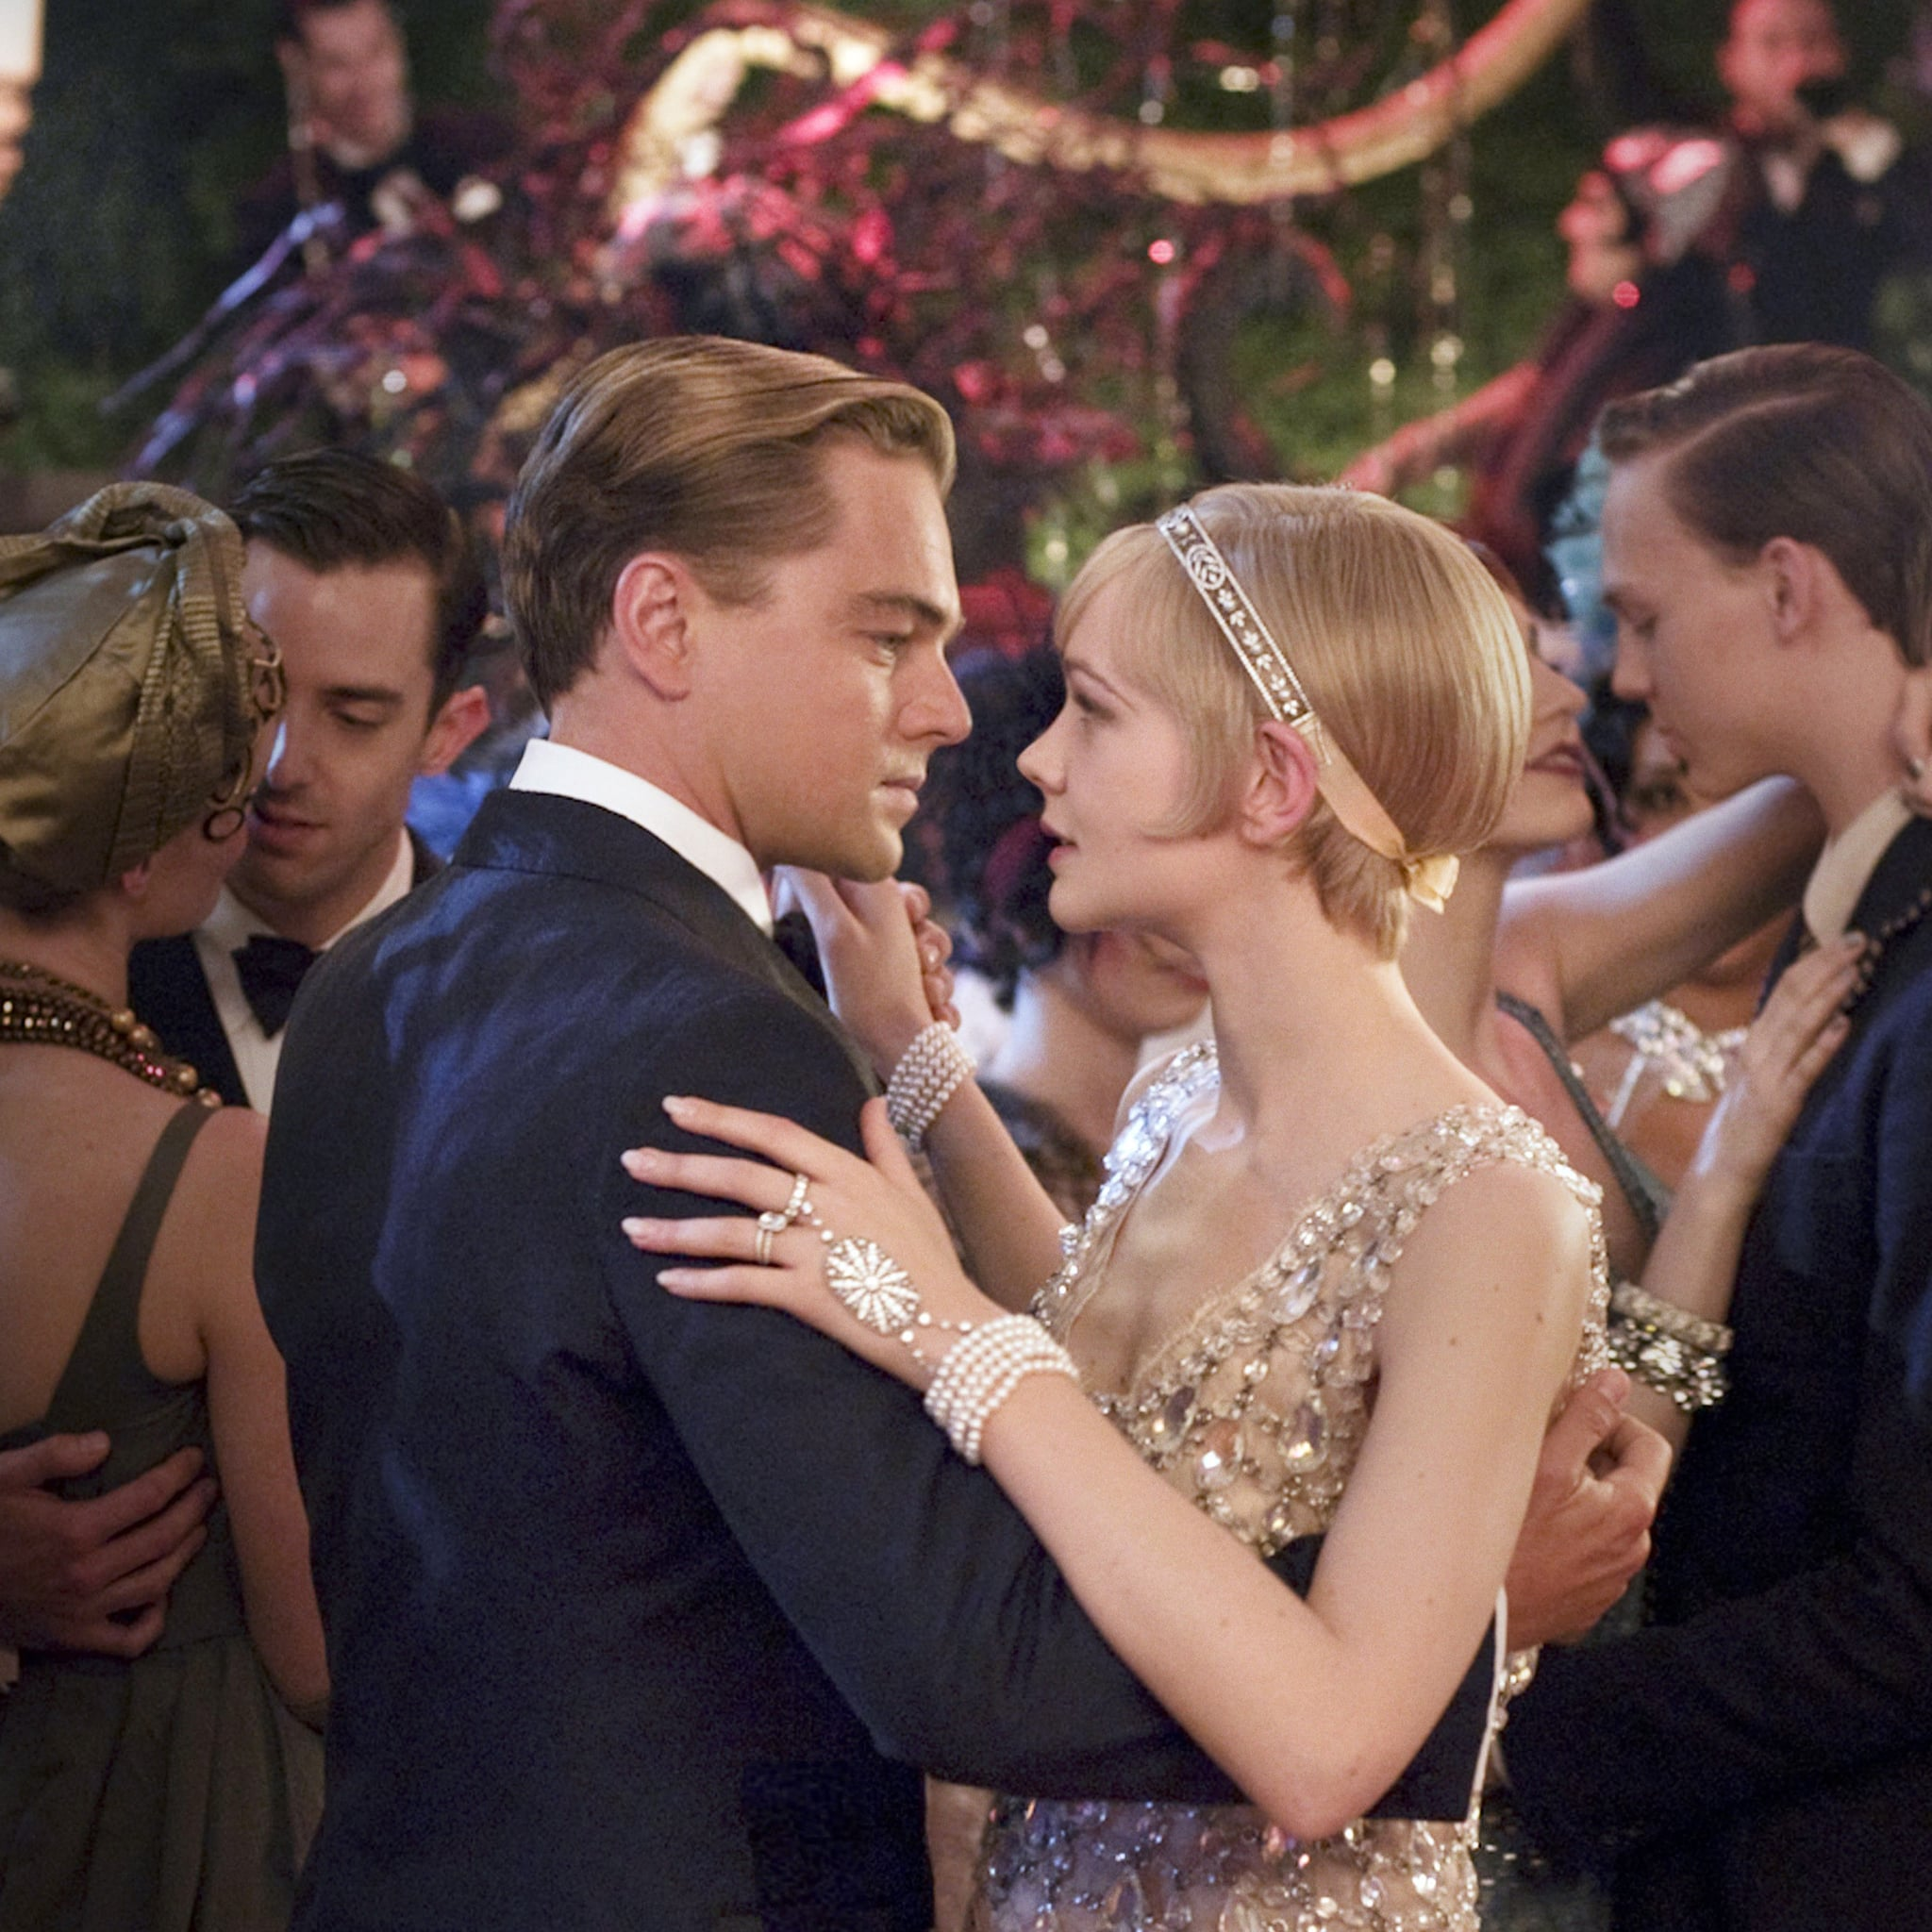 The Great Gatsby Love Quotes | POPSUGAR Love & Sex